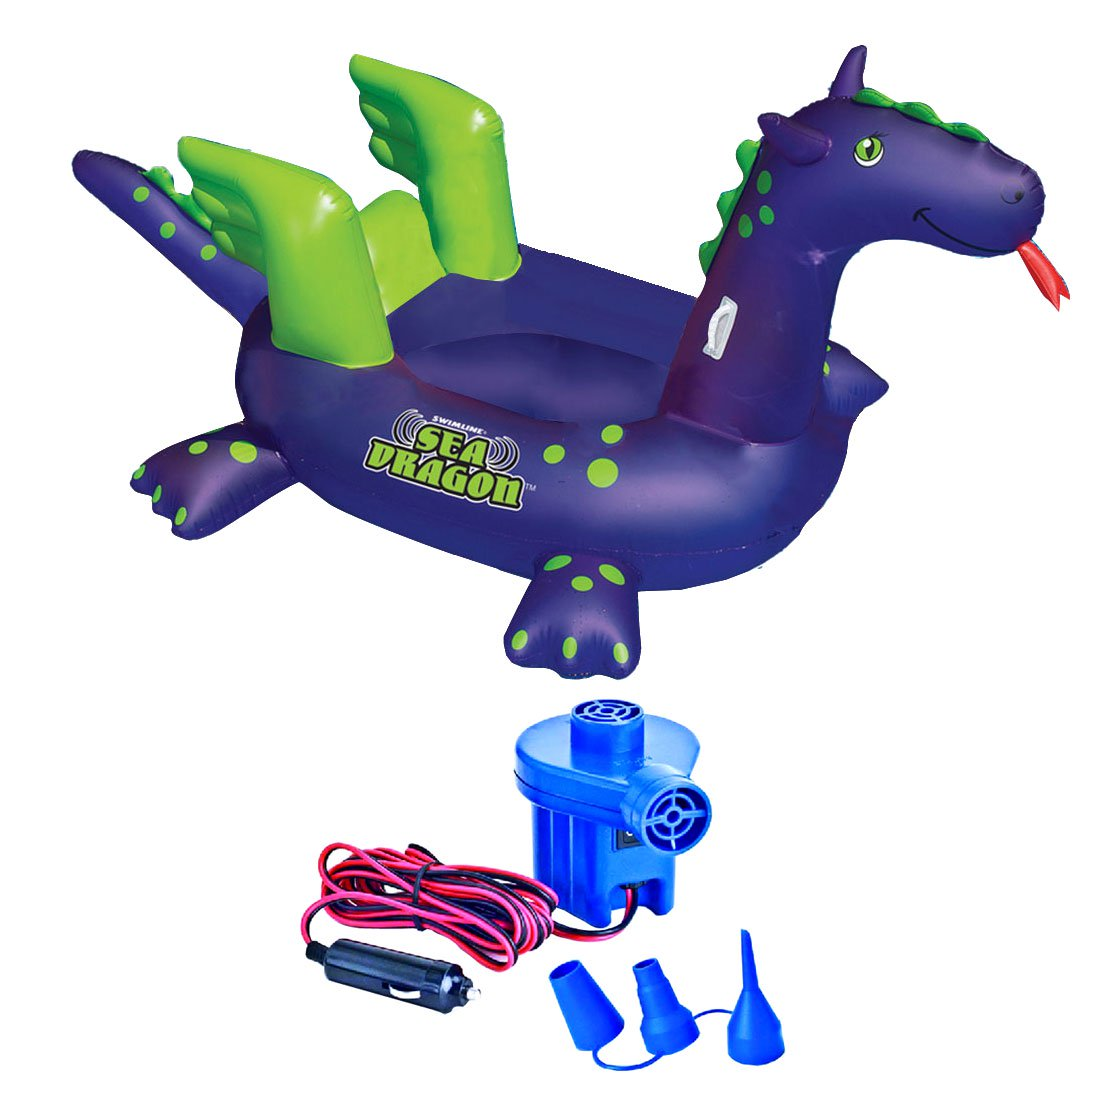 Swimline 90625 Pool Kids Giant Sea Dragon Inflatable Float Toy w/ 12V Air Pump